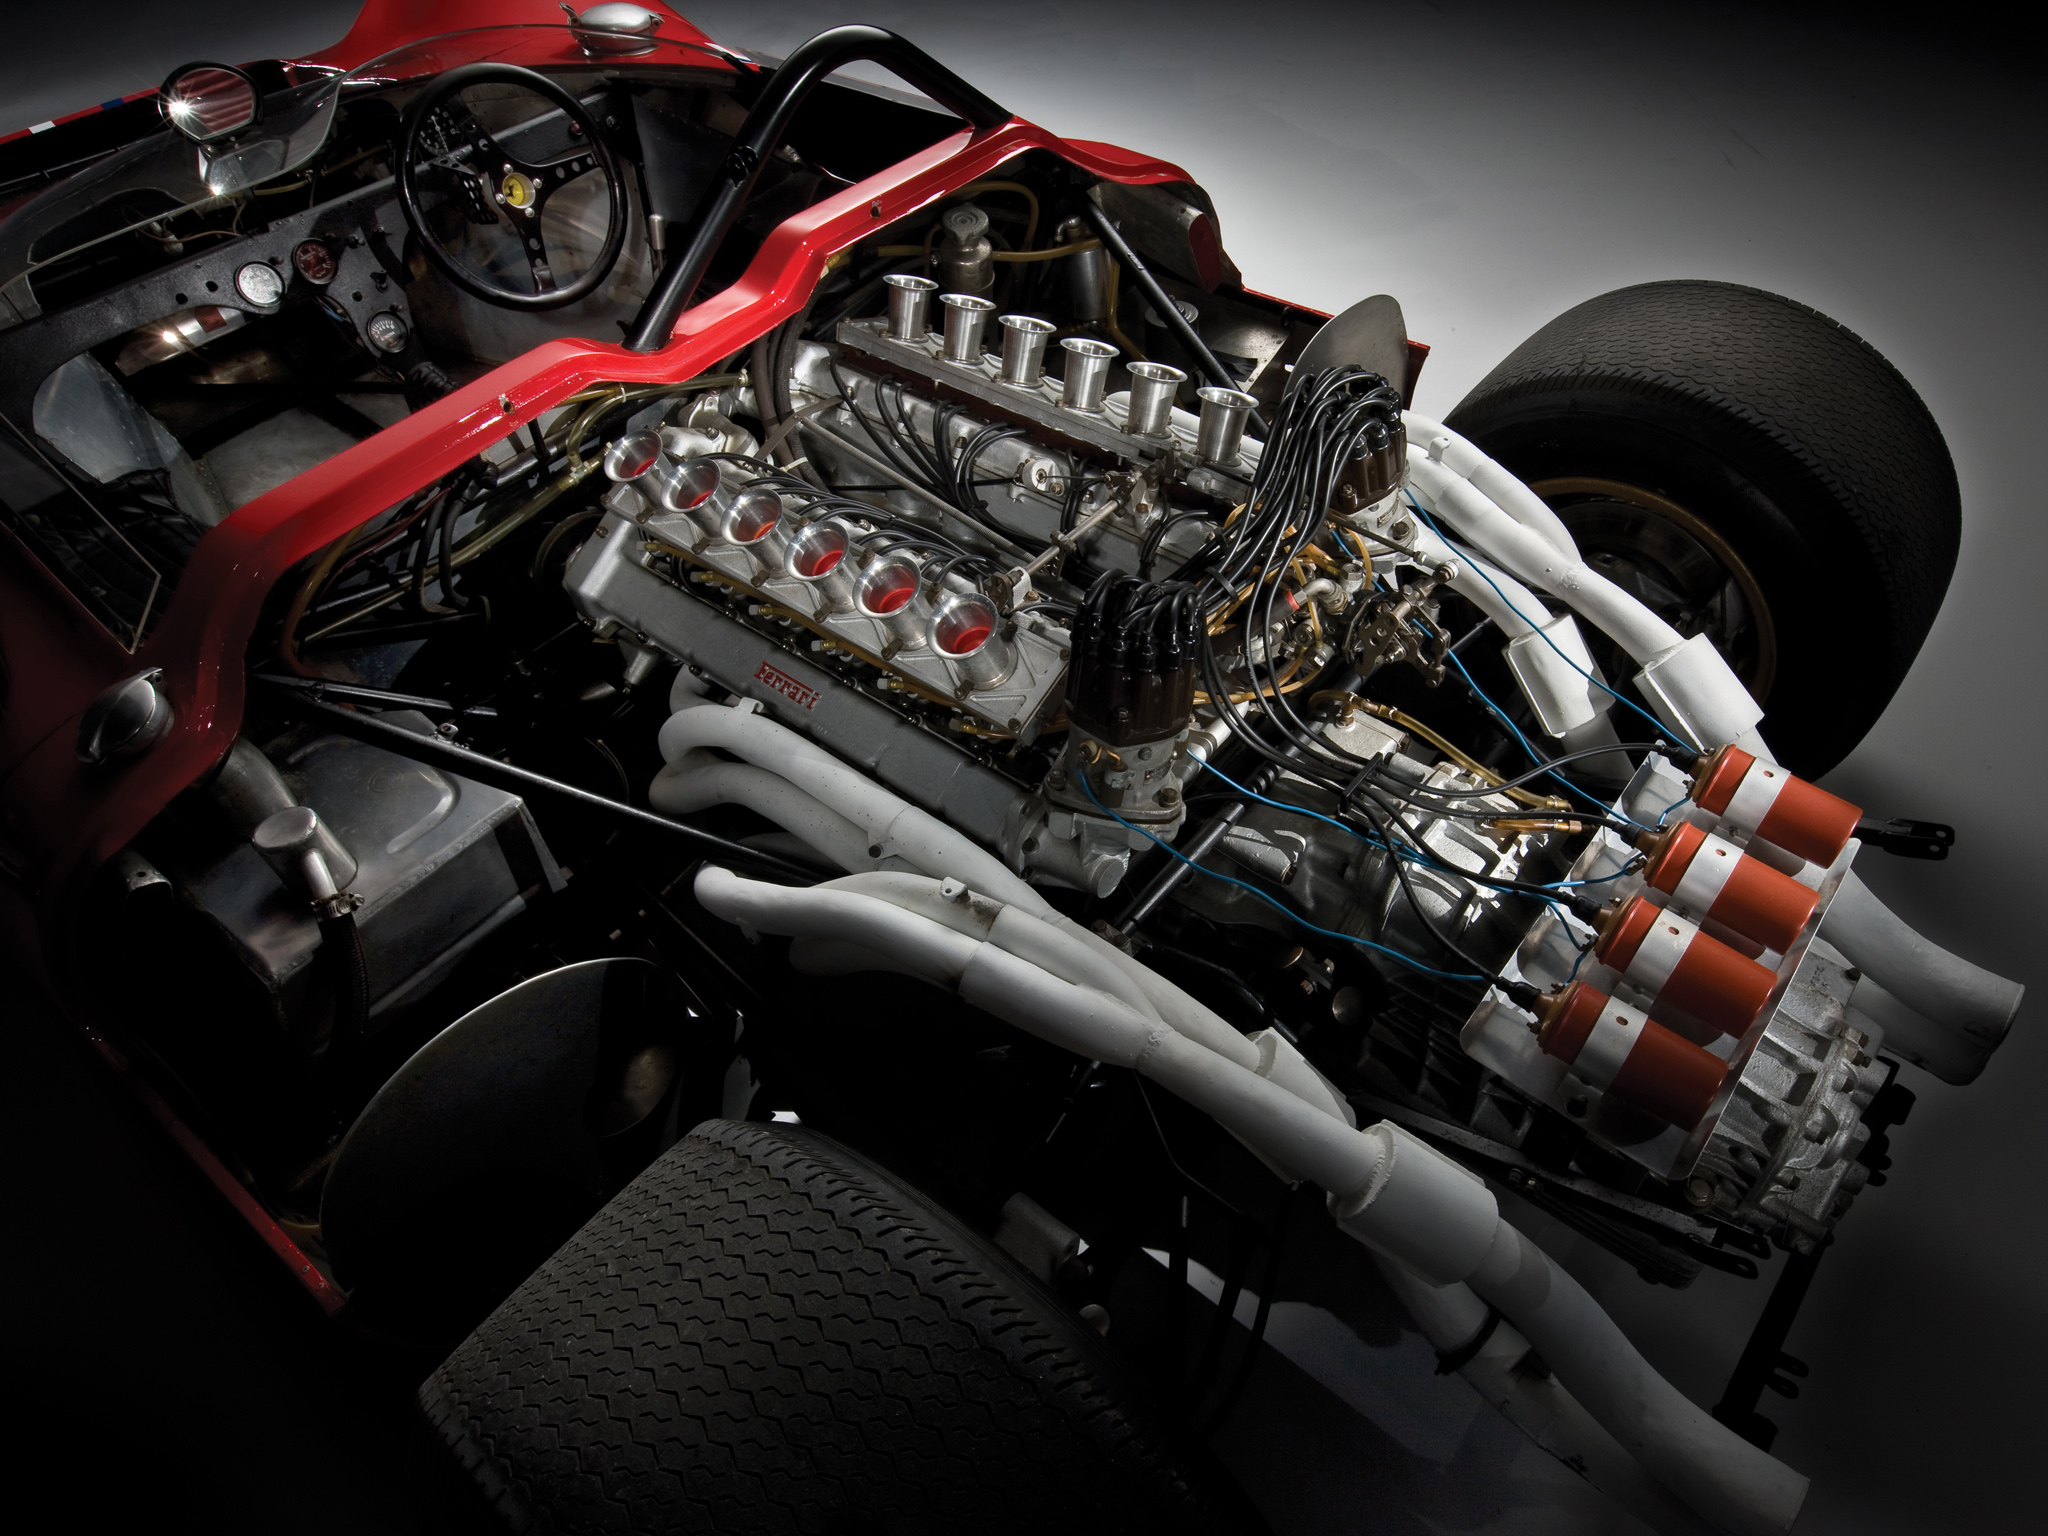 car engine 3 wallpapers - photo #10